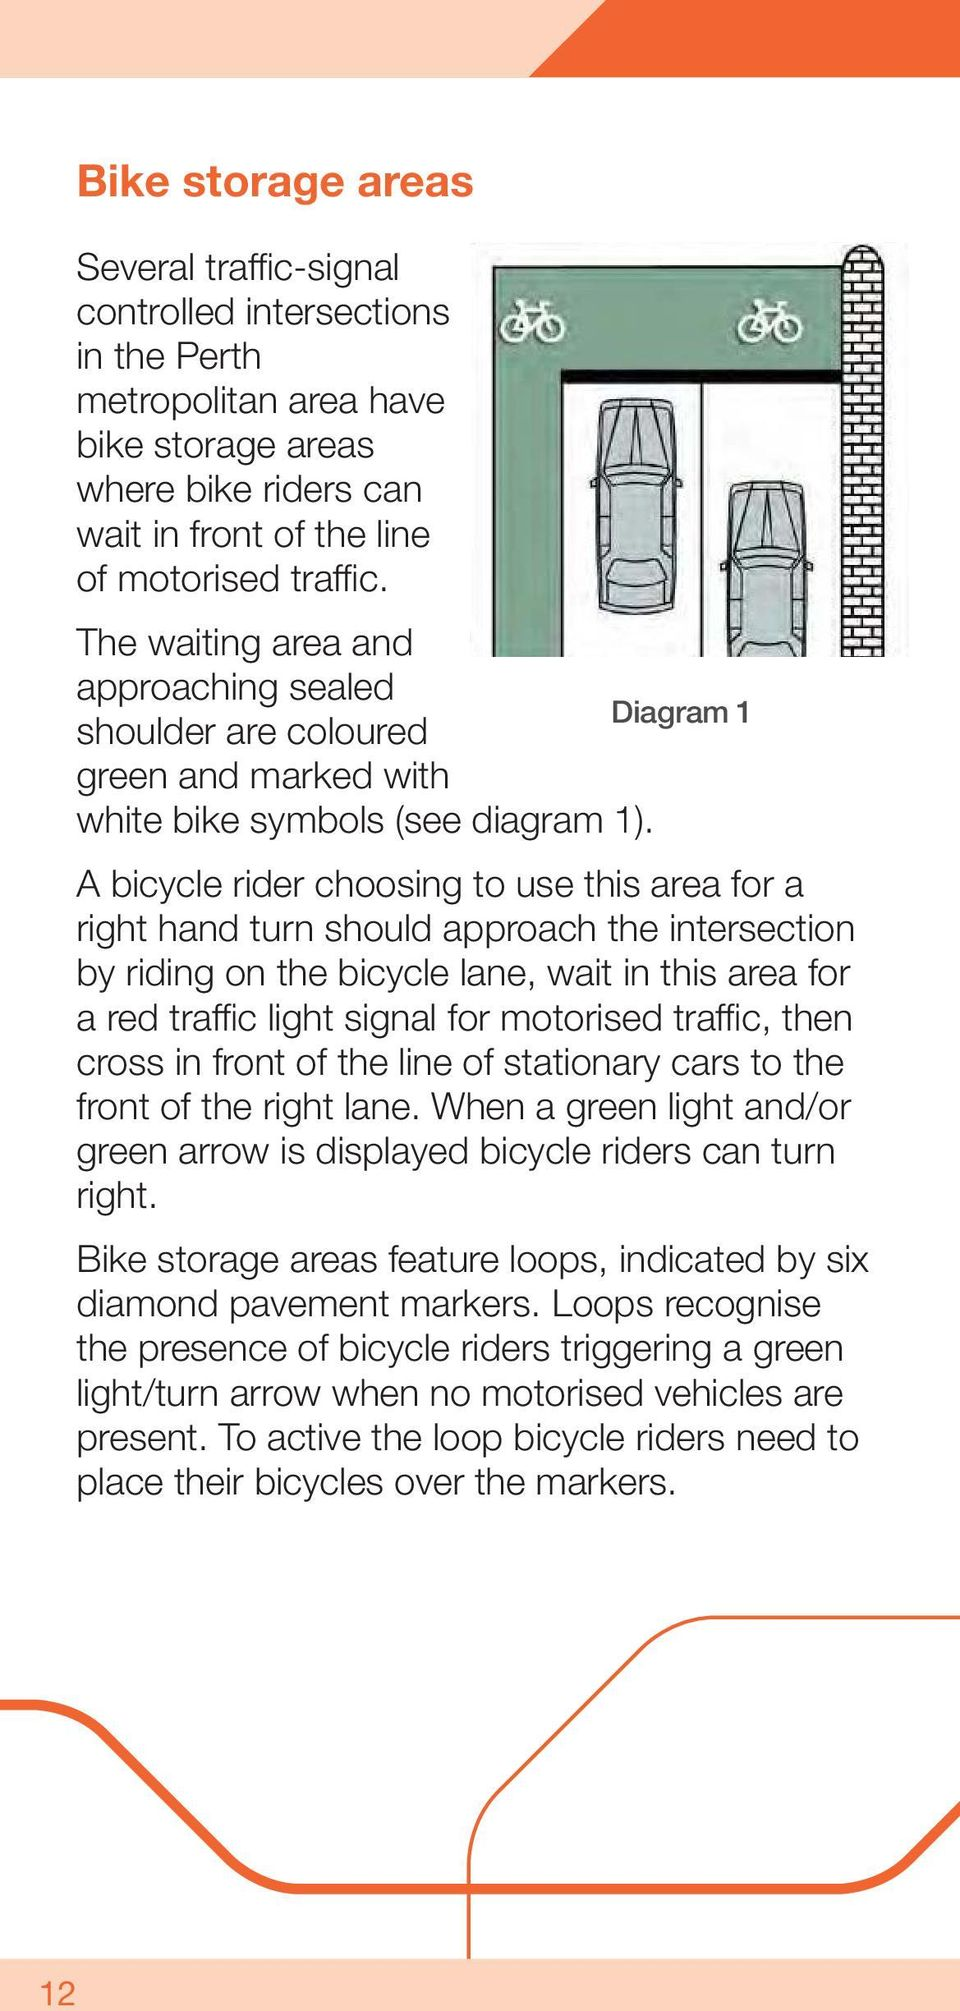 A bicycle rider choosing to use this area for a right hand turn should approach the intersection by riding on the bicycle lane, wait in this area for a red traffic light signal for motorised traffic,